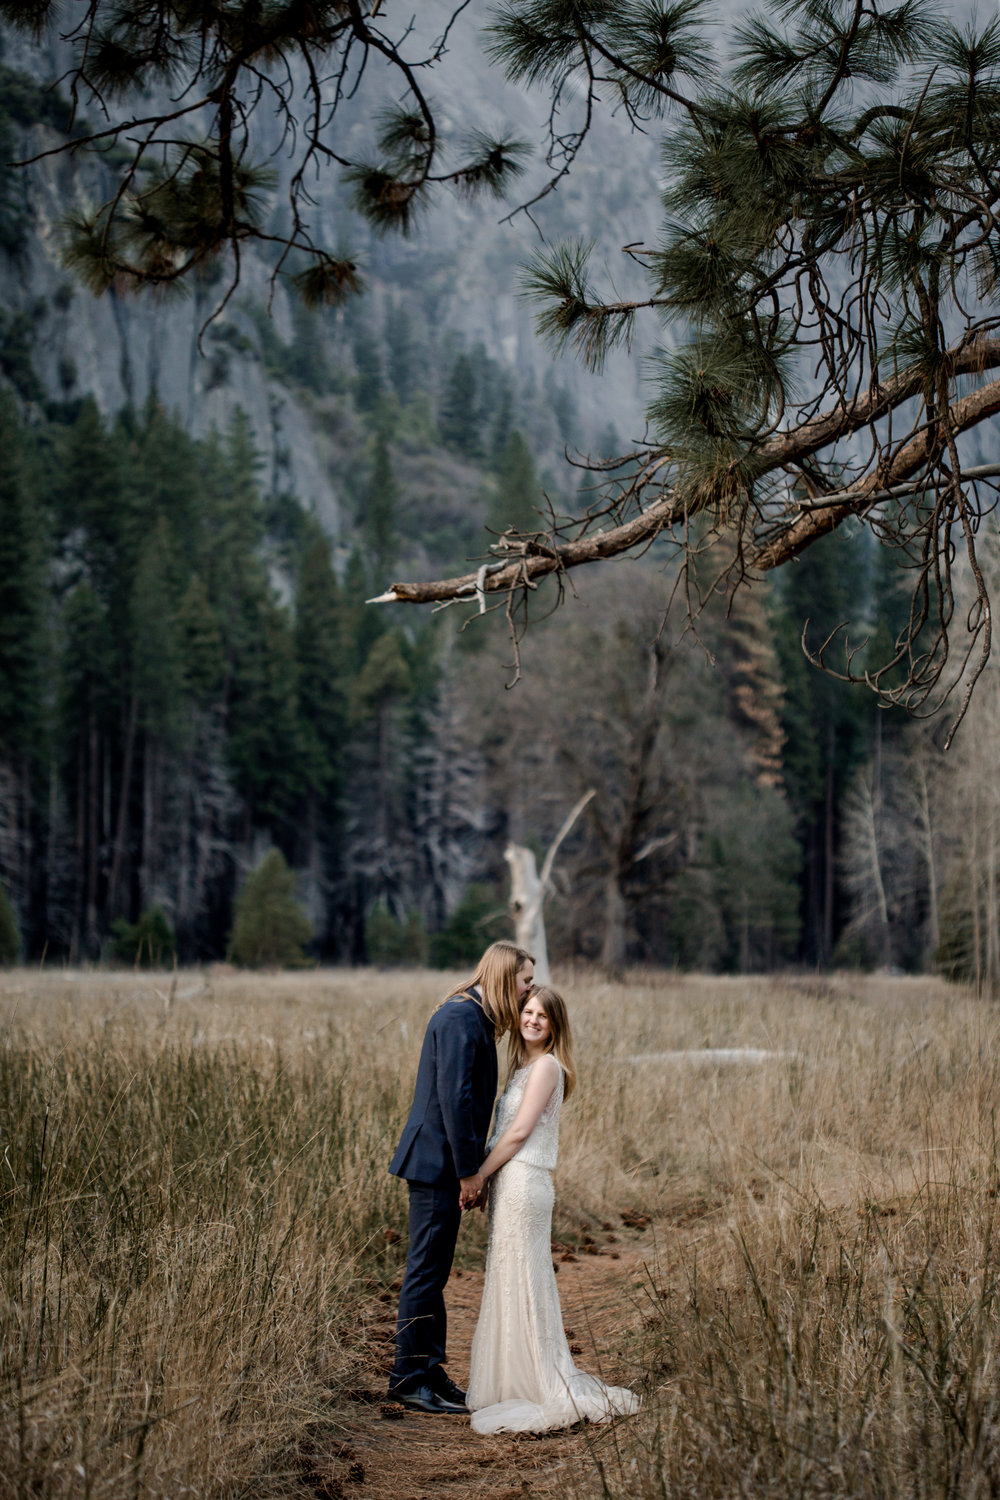 nicole-daacke-photography-yousemite-national-park-elopement-photographer-winter-cloud-moody-elope-inspiration-yosemite-valley-tunnel-view-winter-cloud-fog-weather-wedding-photos-74.jpg